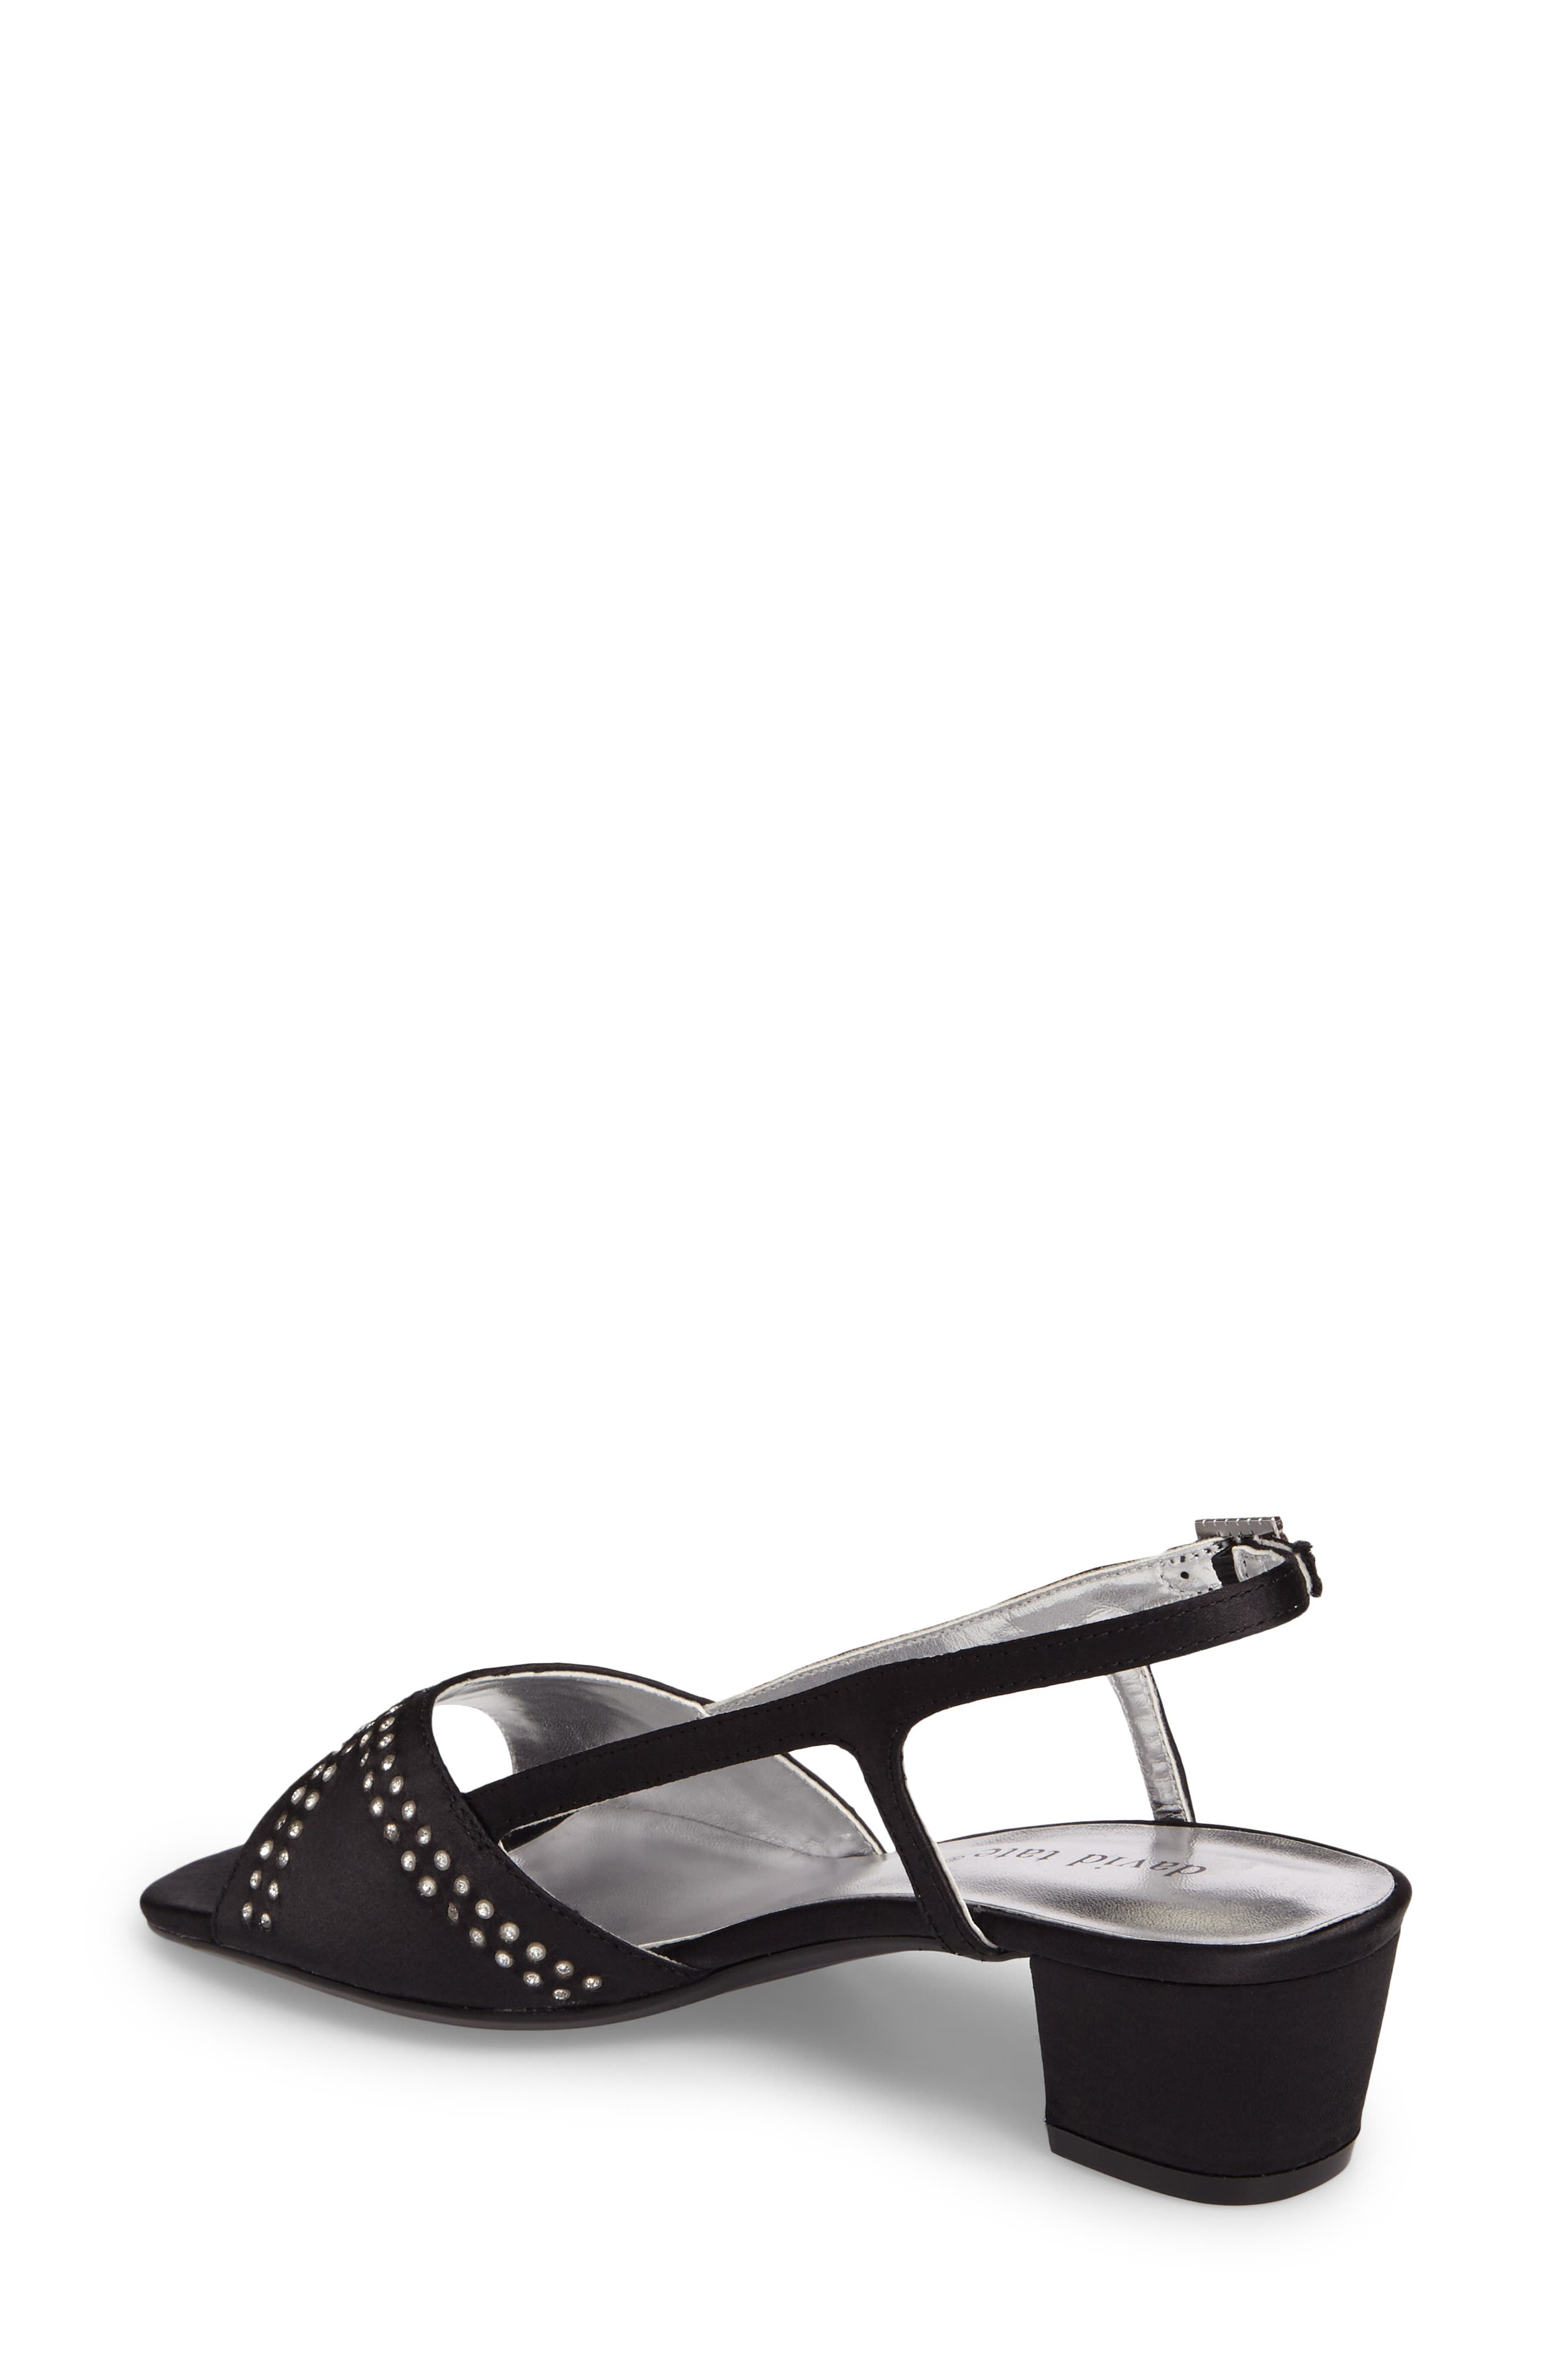 DAVID TATE, Wish Slingback Sandal, Alternate thumbnail 2, color, BLACK SATIN